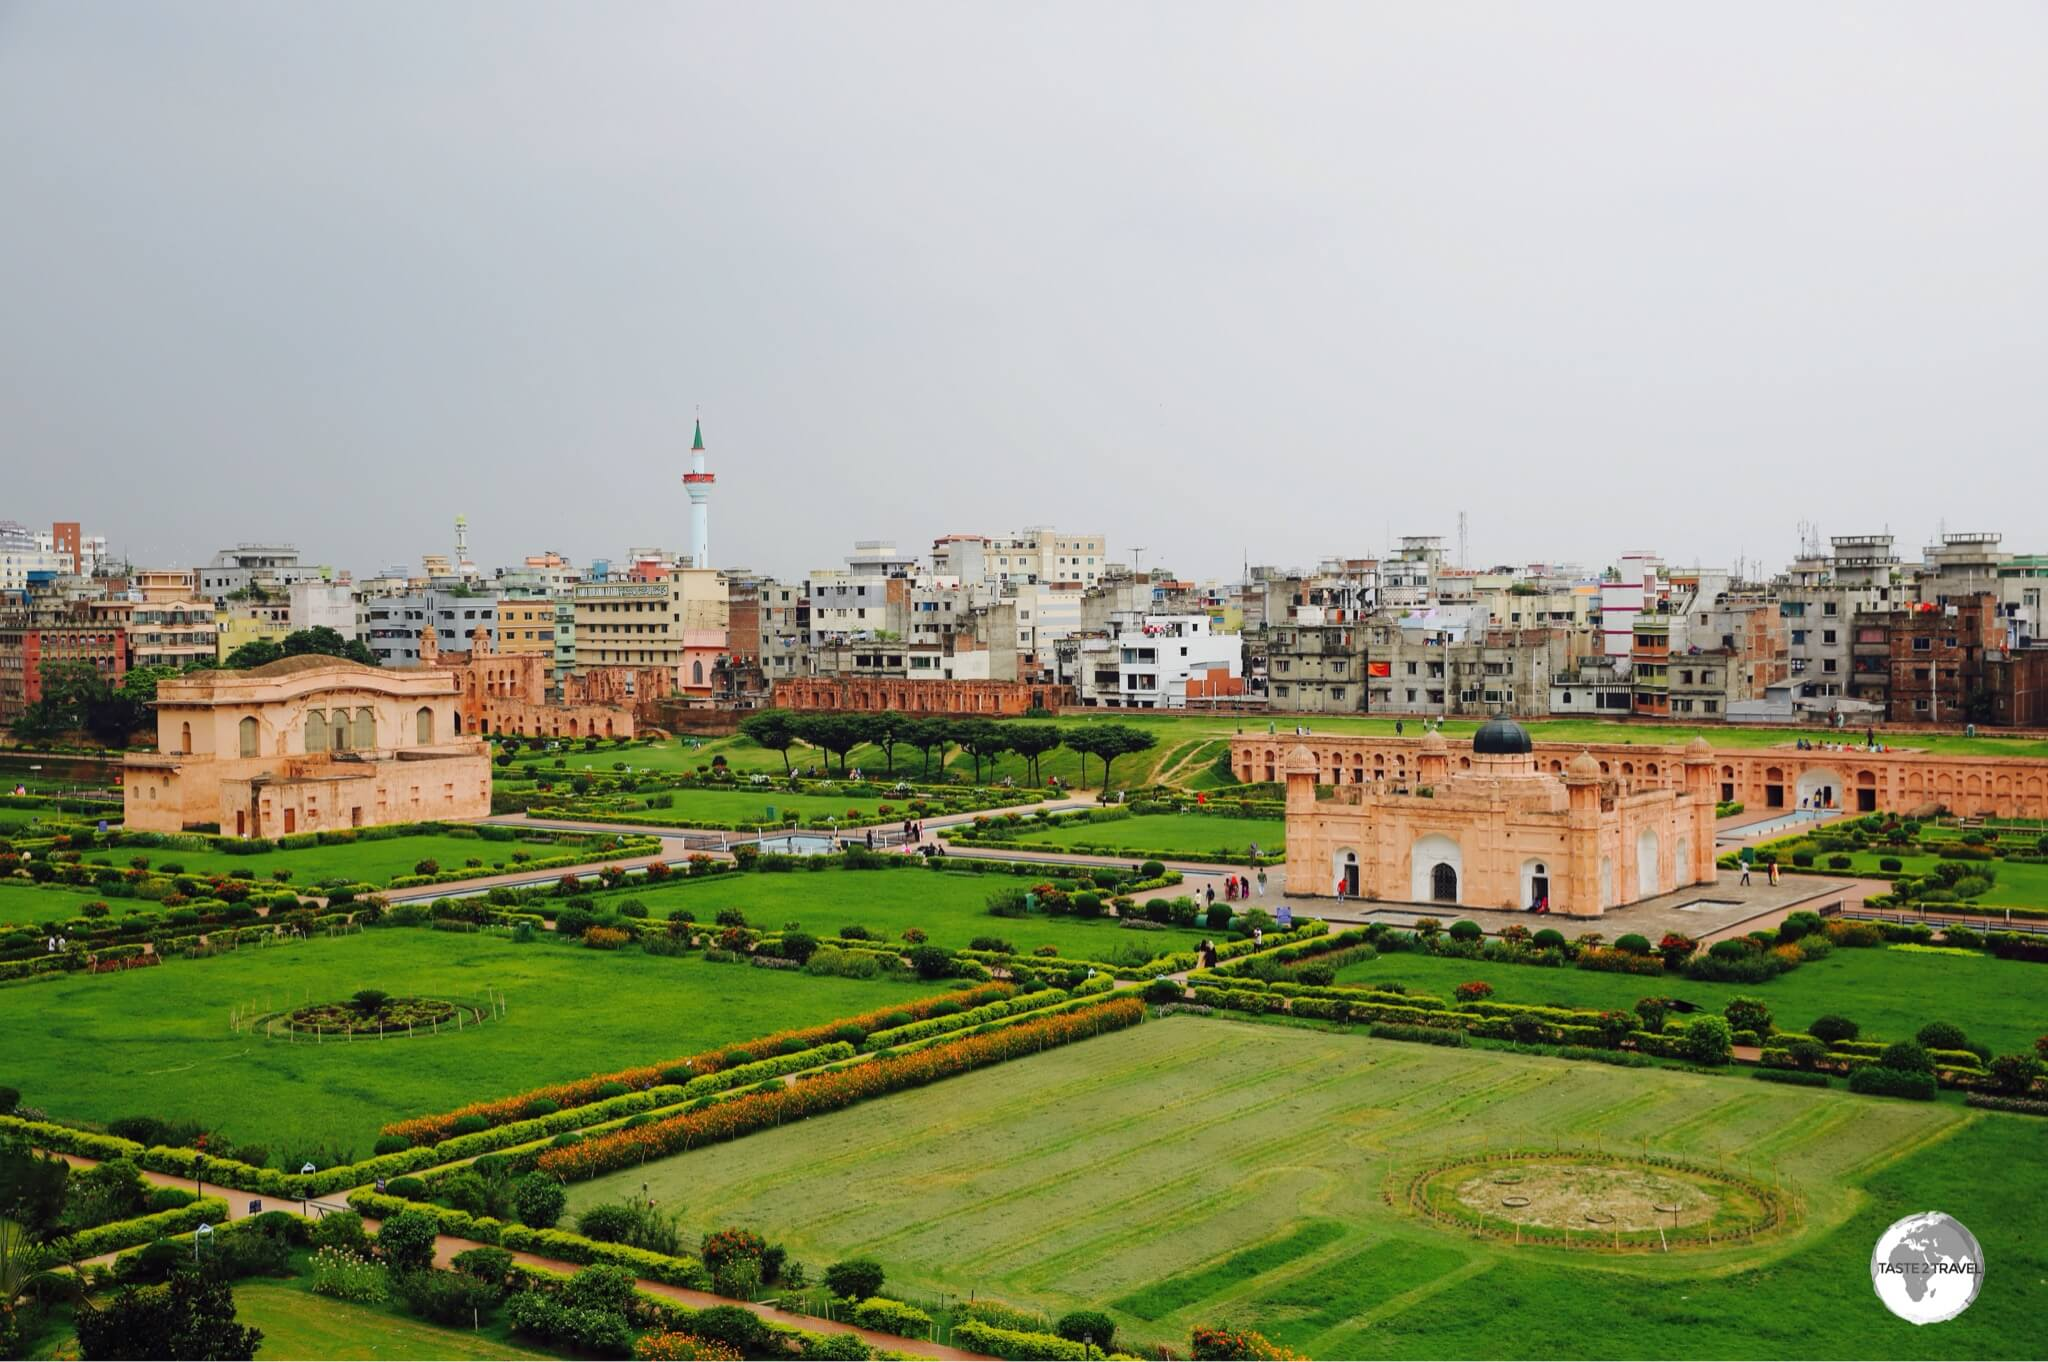 A fine panoramic view of Lalbagh Fort which is surrounded by the congested streets of Old Dhaka.